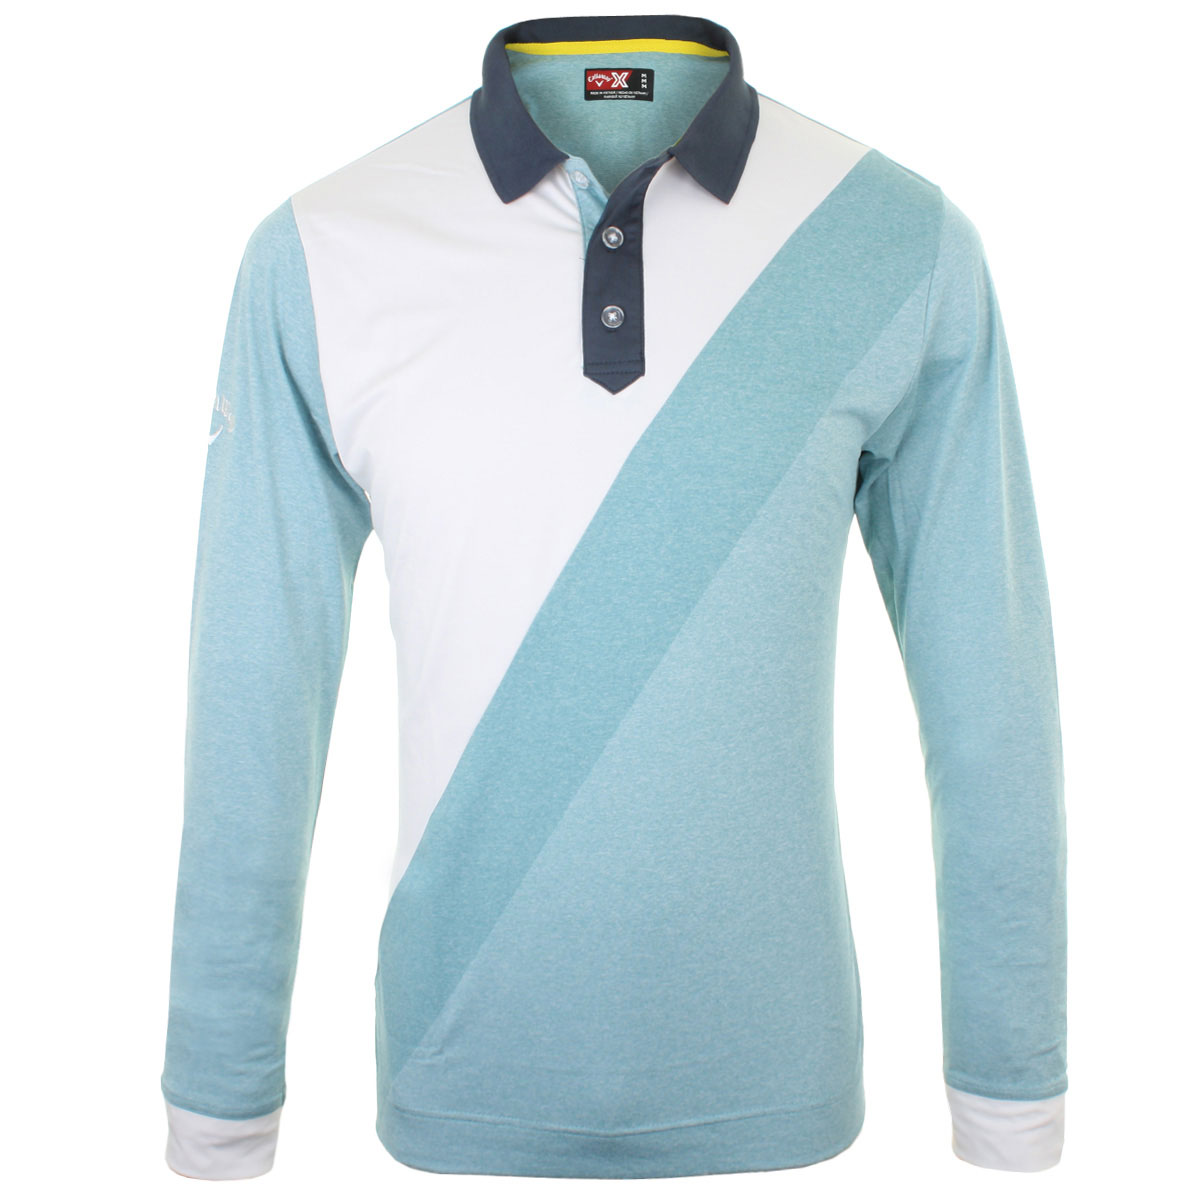 67 off rrp callaway golf mens rugby inspired long sleeve for Long sleeve polo golf shirts